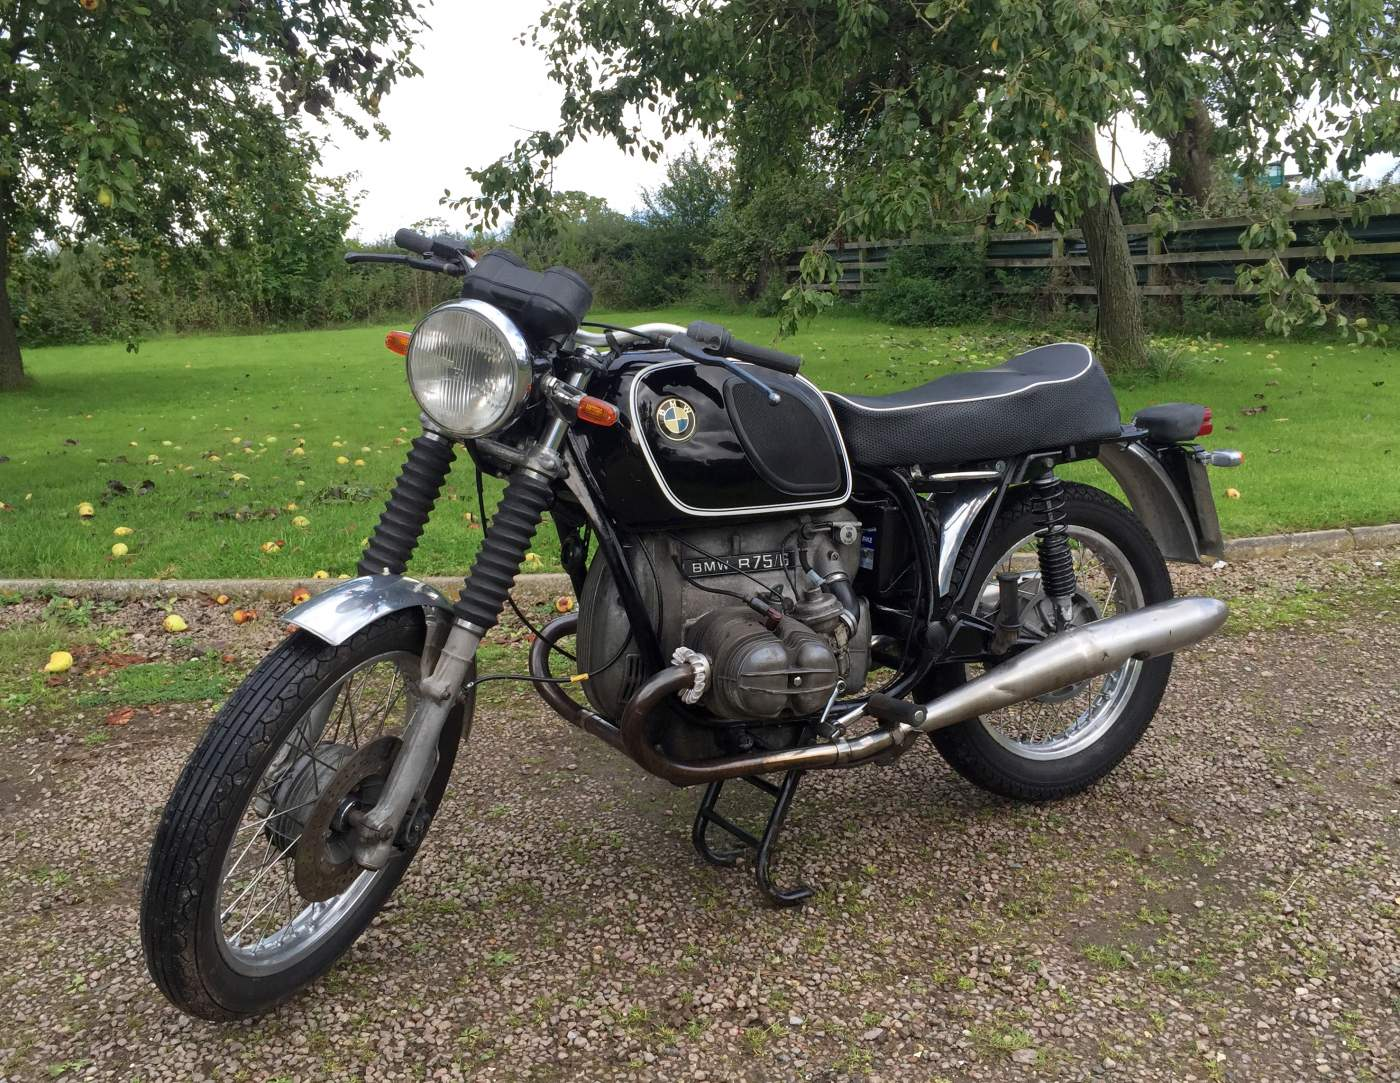 1976 BMW R75/6 - We Sell Classic Bikes